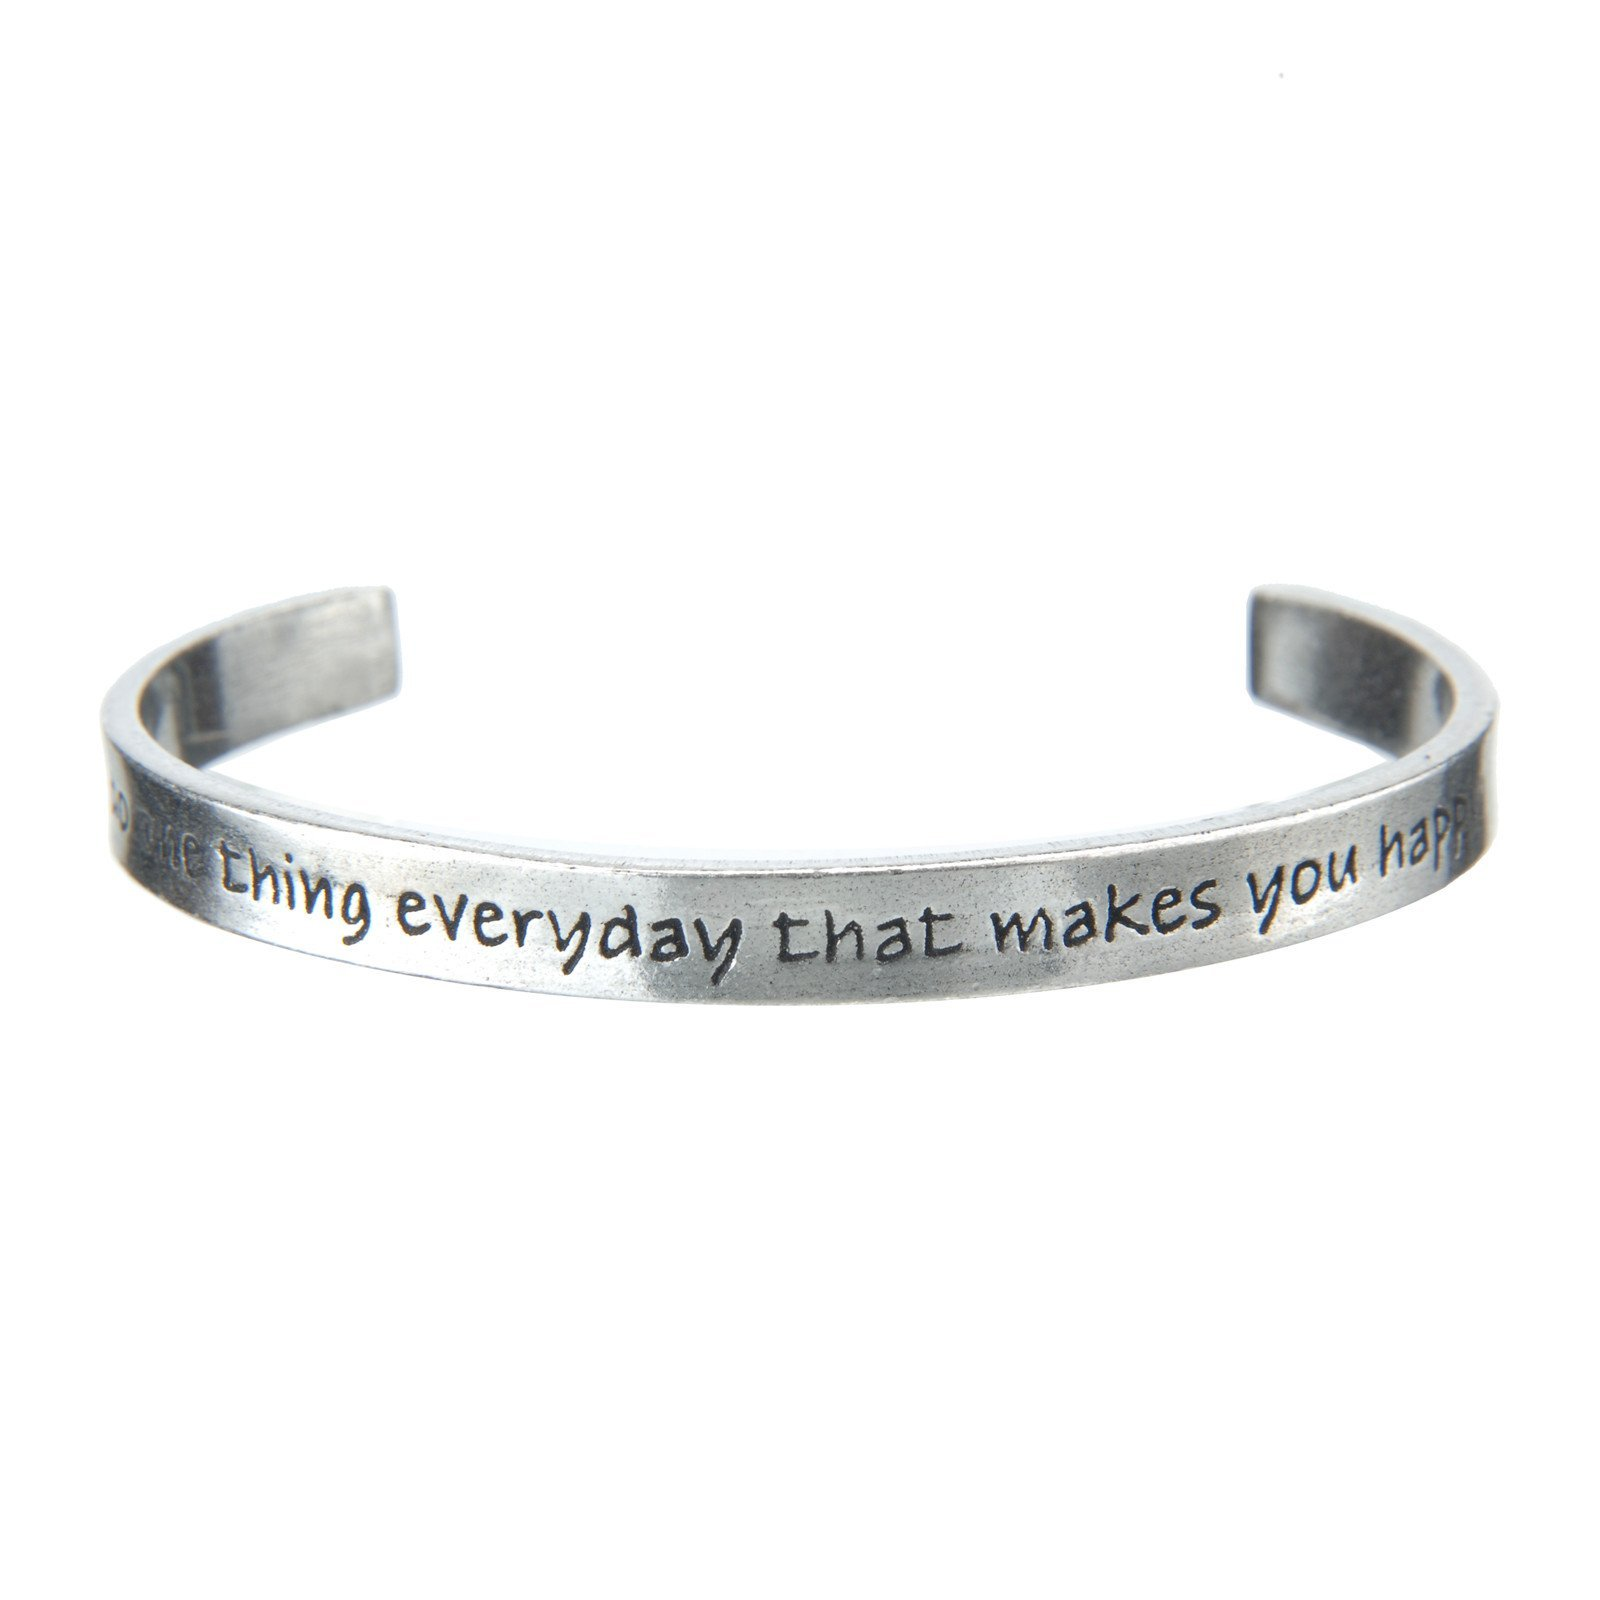 Do One Thing That Makes You Happy Every Day Cuff Bracelet